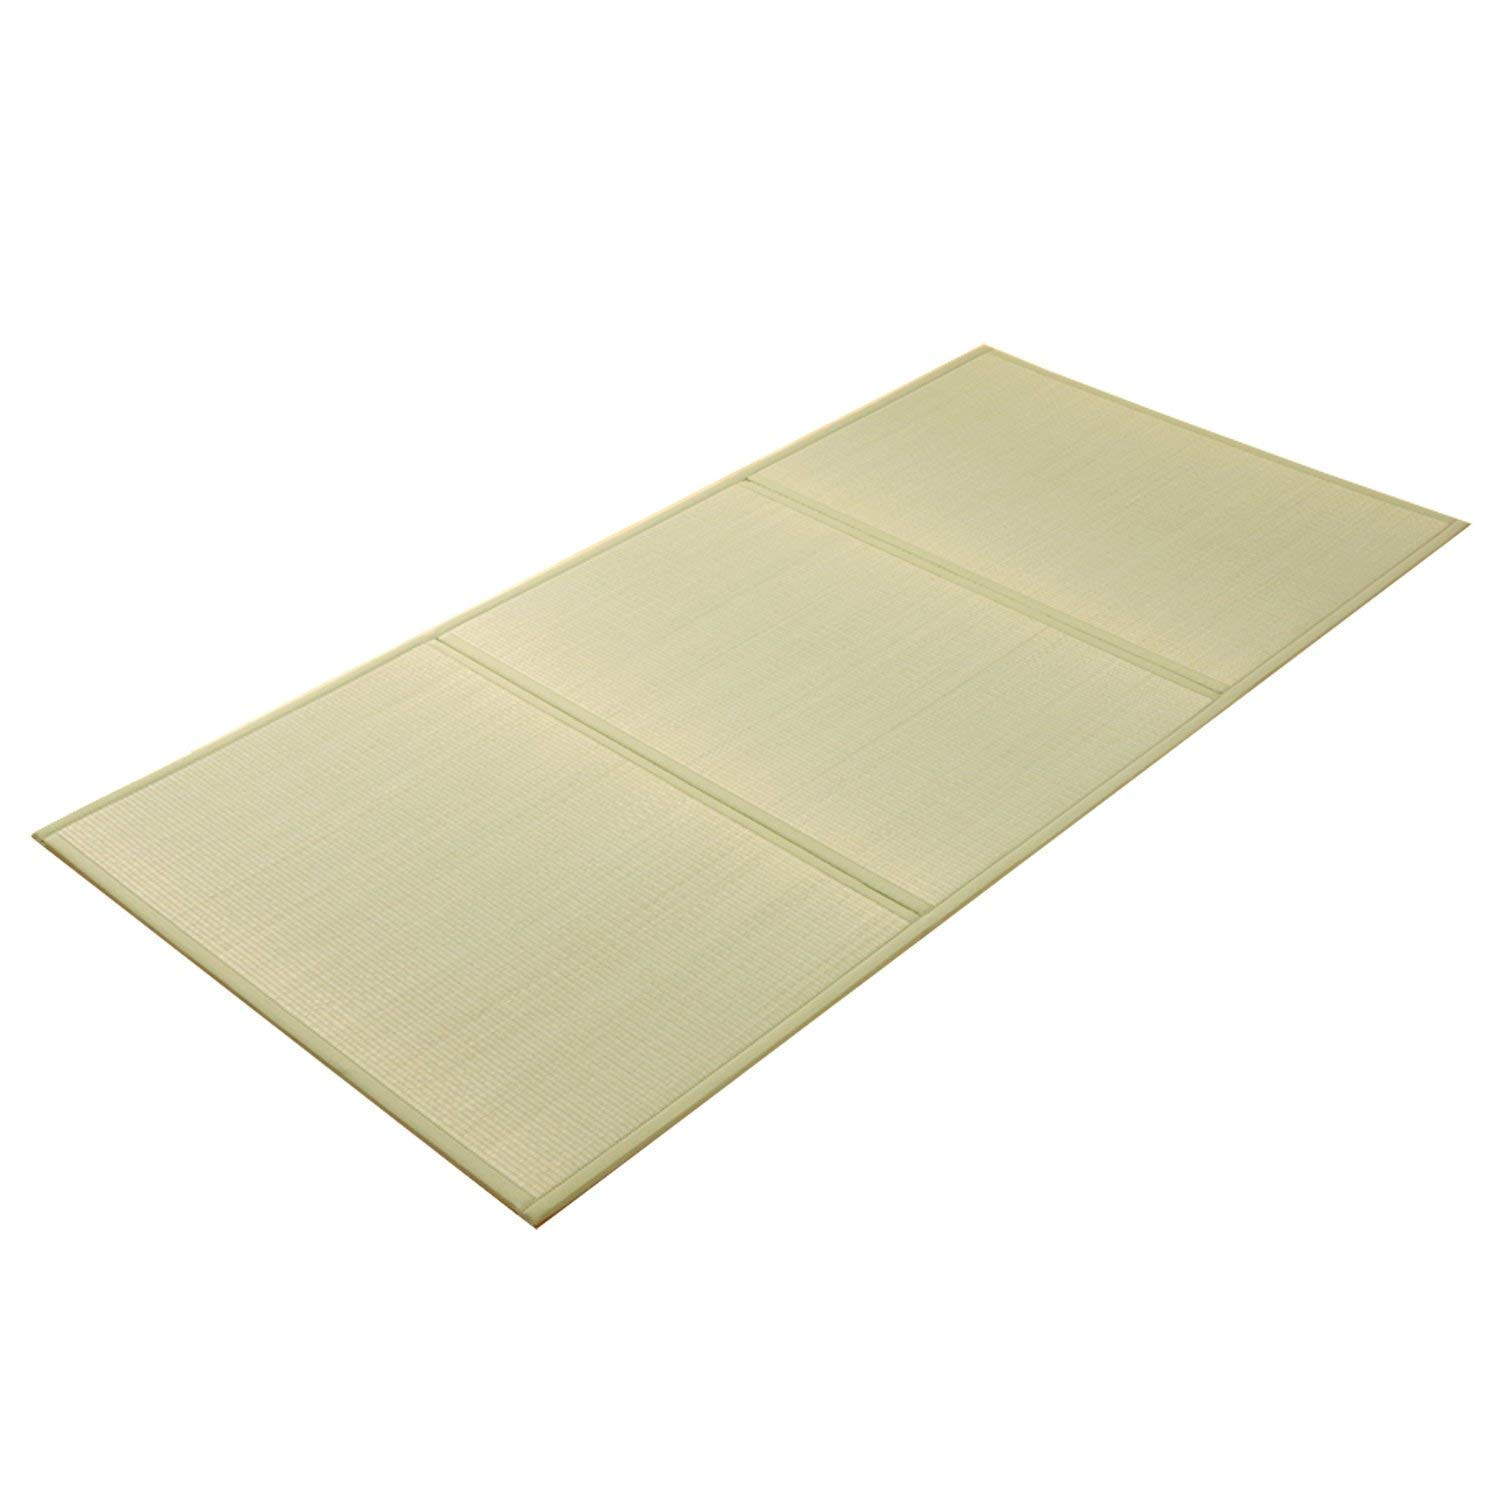 IKEHIKO Folding Rush Grass Mattress Tatami Mat 120 x 210 cm by IKEHIKO